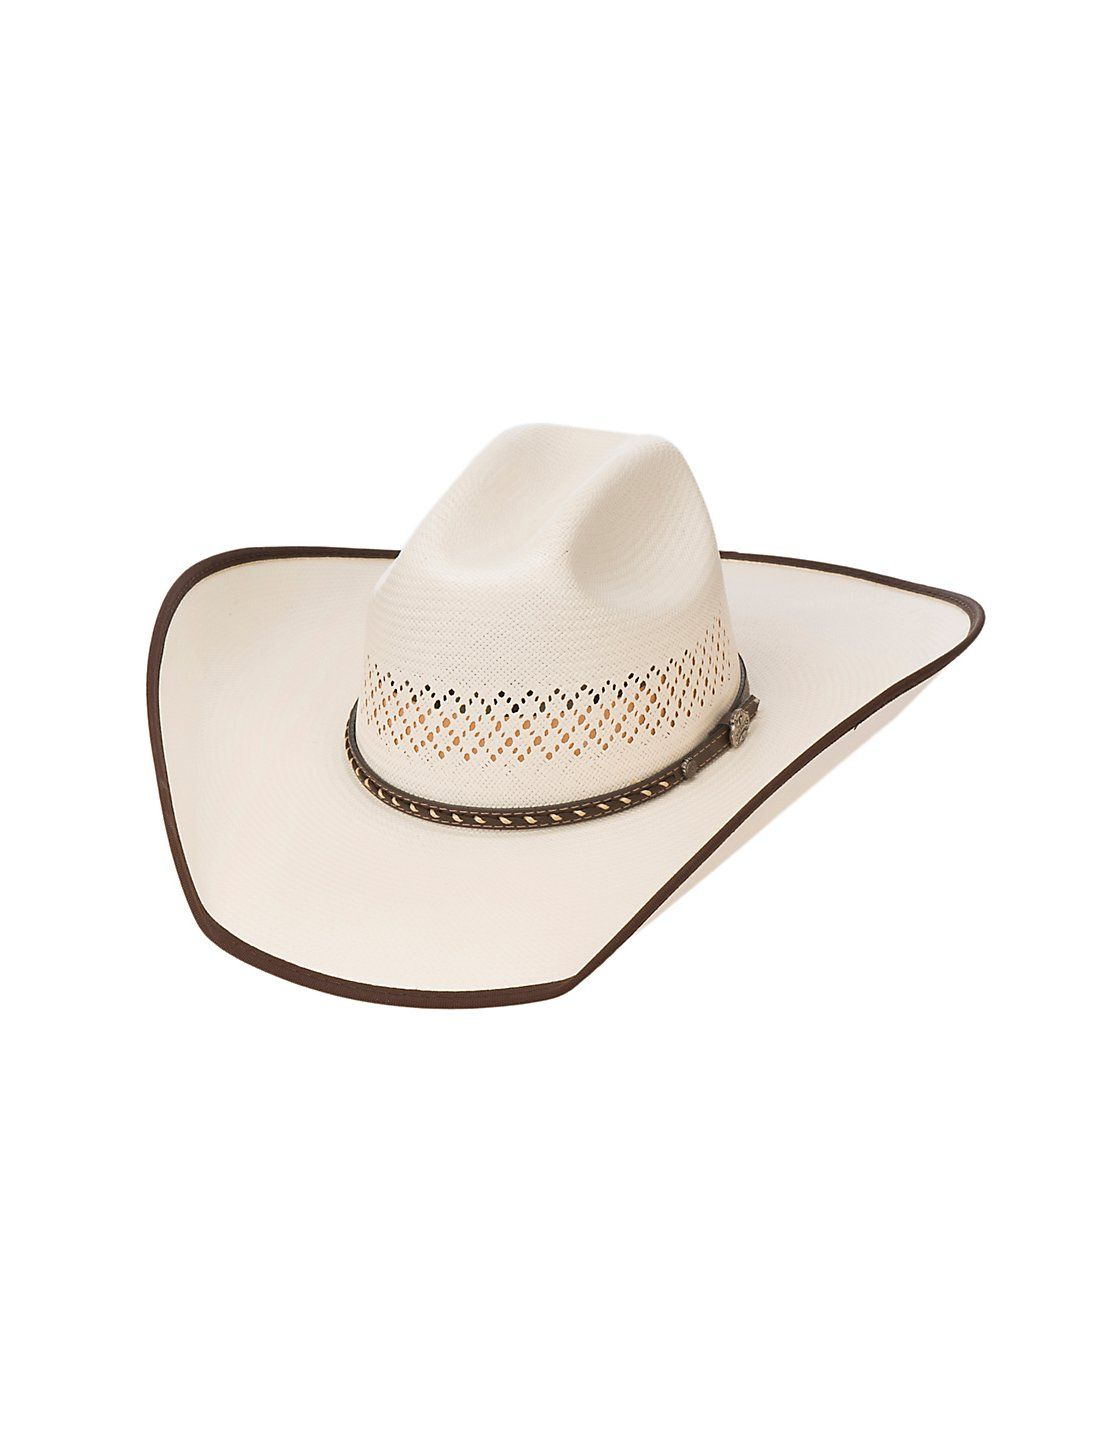 0c5ffd24541 Cavender s Cowboy Collection 10X Ivory Vented Crown Straw Hat ...